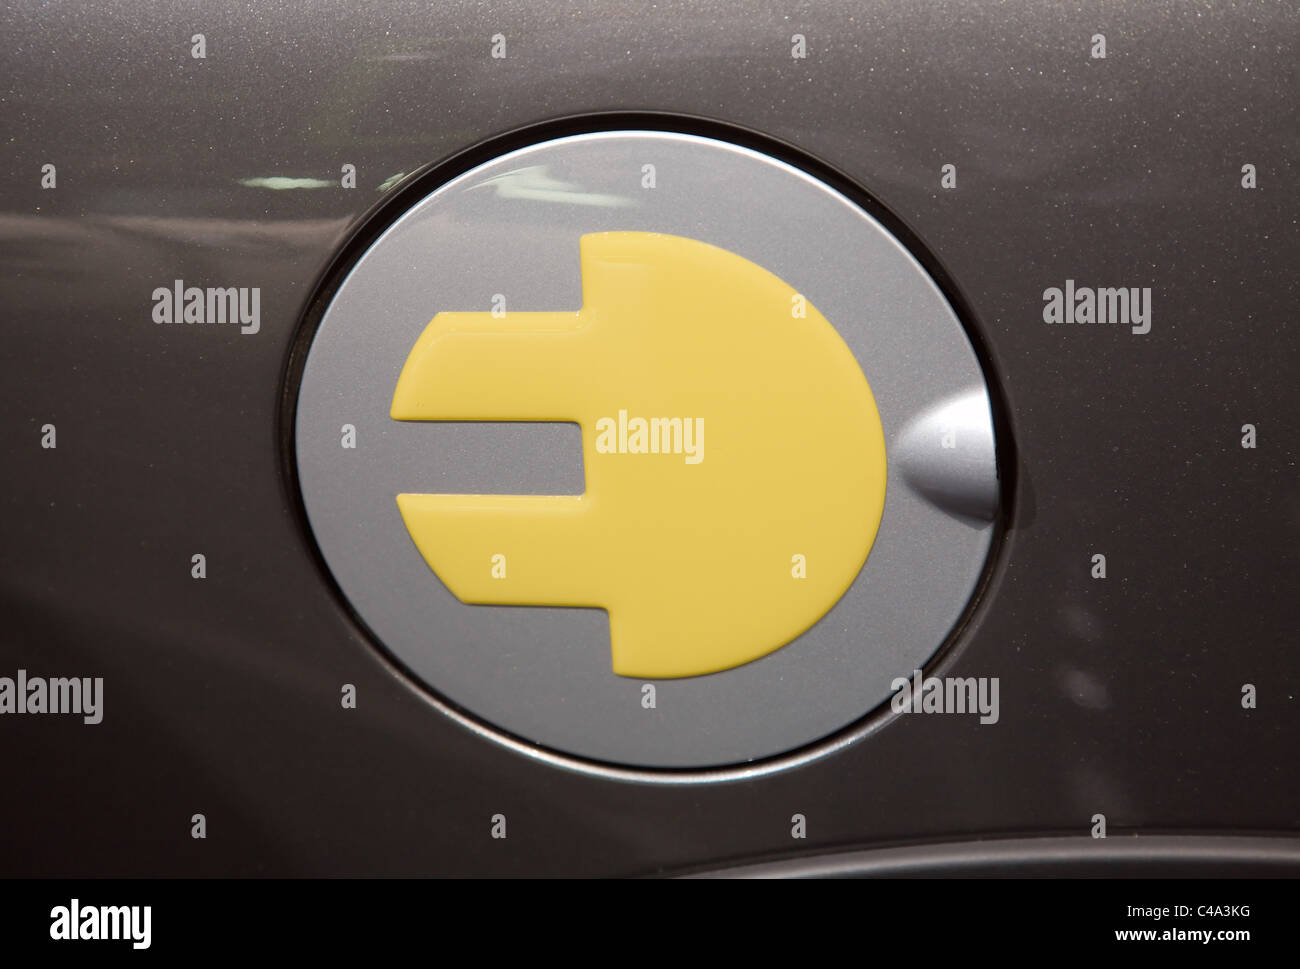 BMW Mini Electric Logo on the filler cap or fuel door - Stock Image